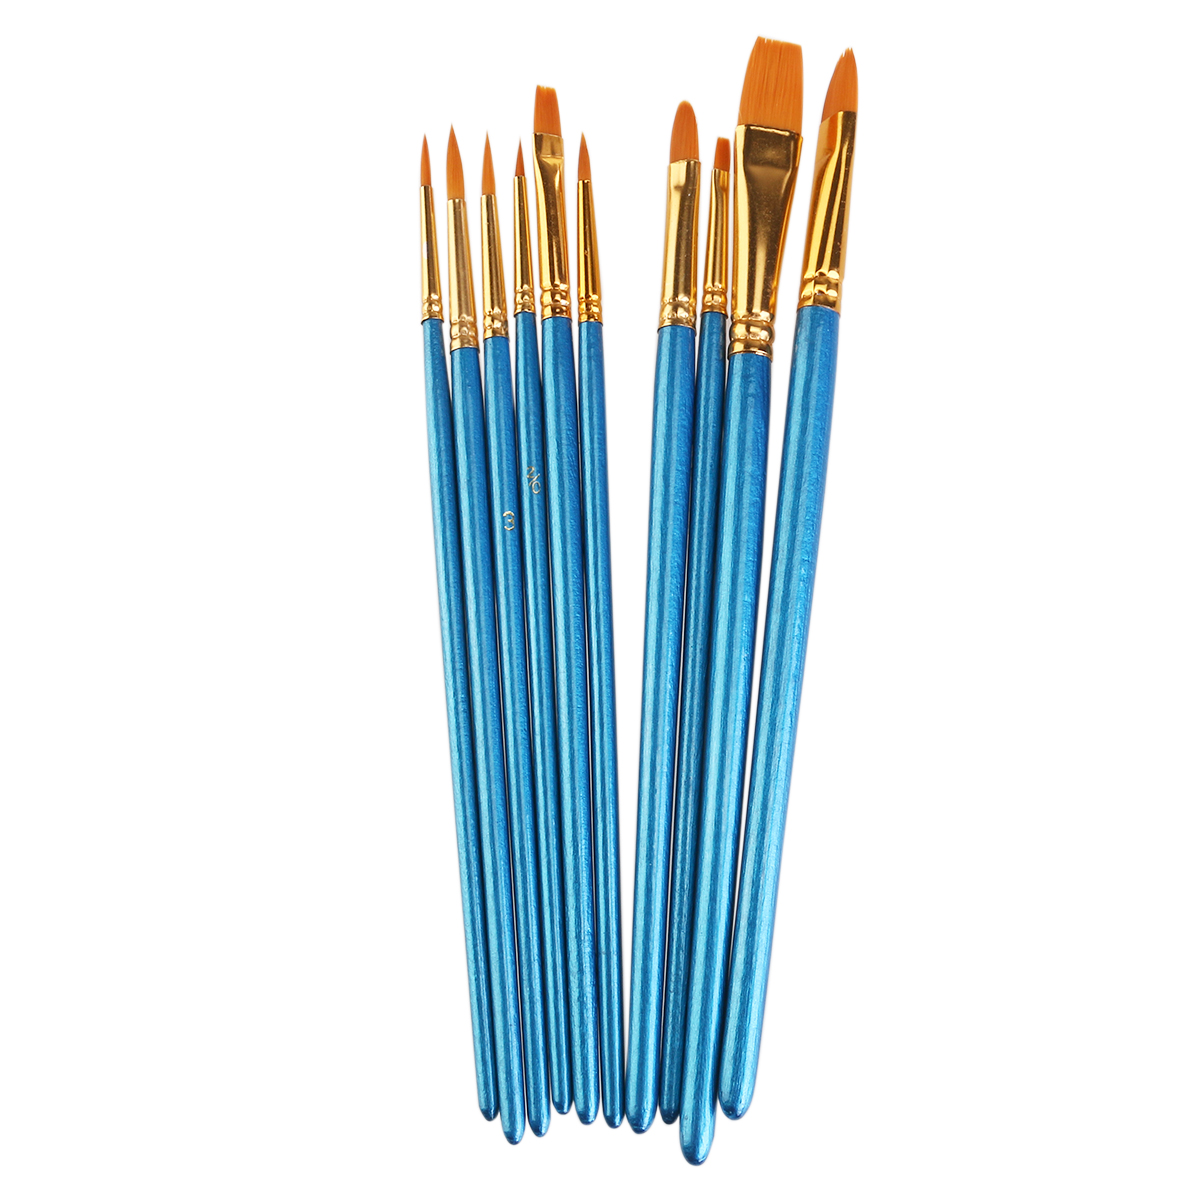 10pcs Nylon Paint Brushes Watercolor Painting Brush Set (Blue)